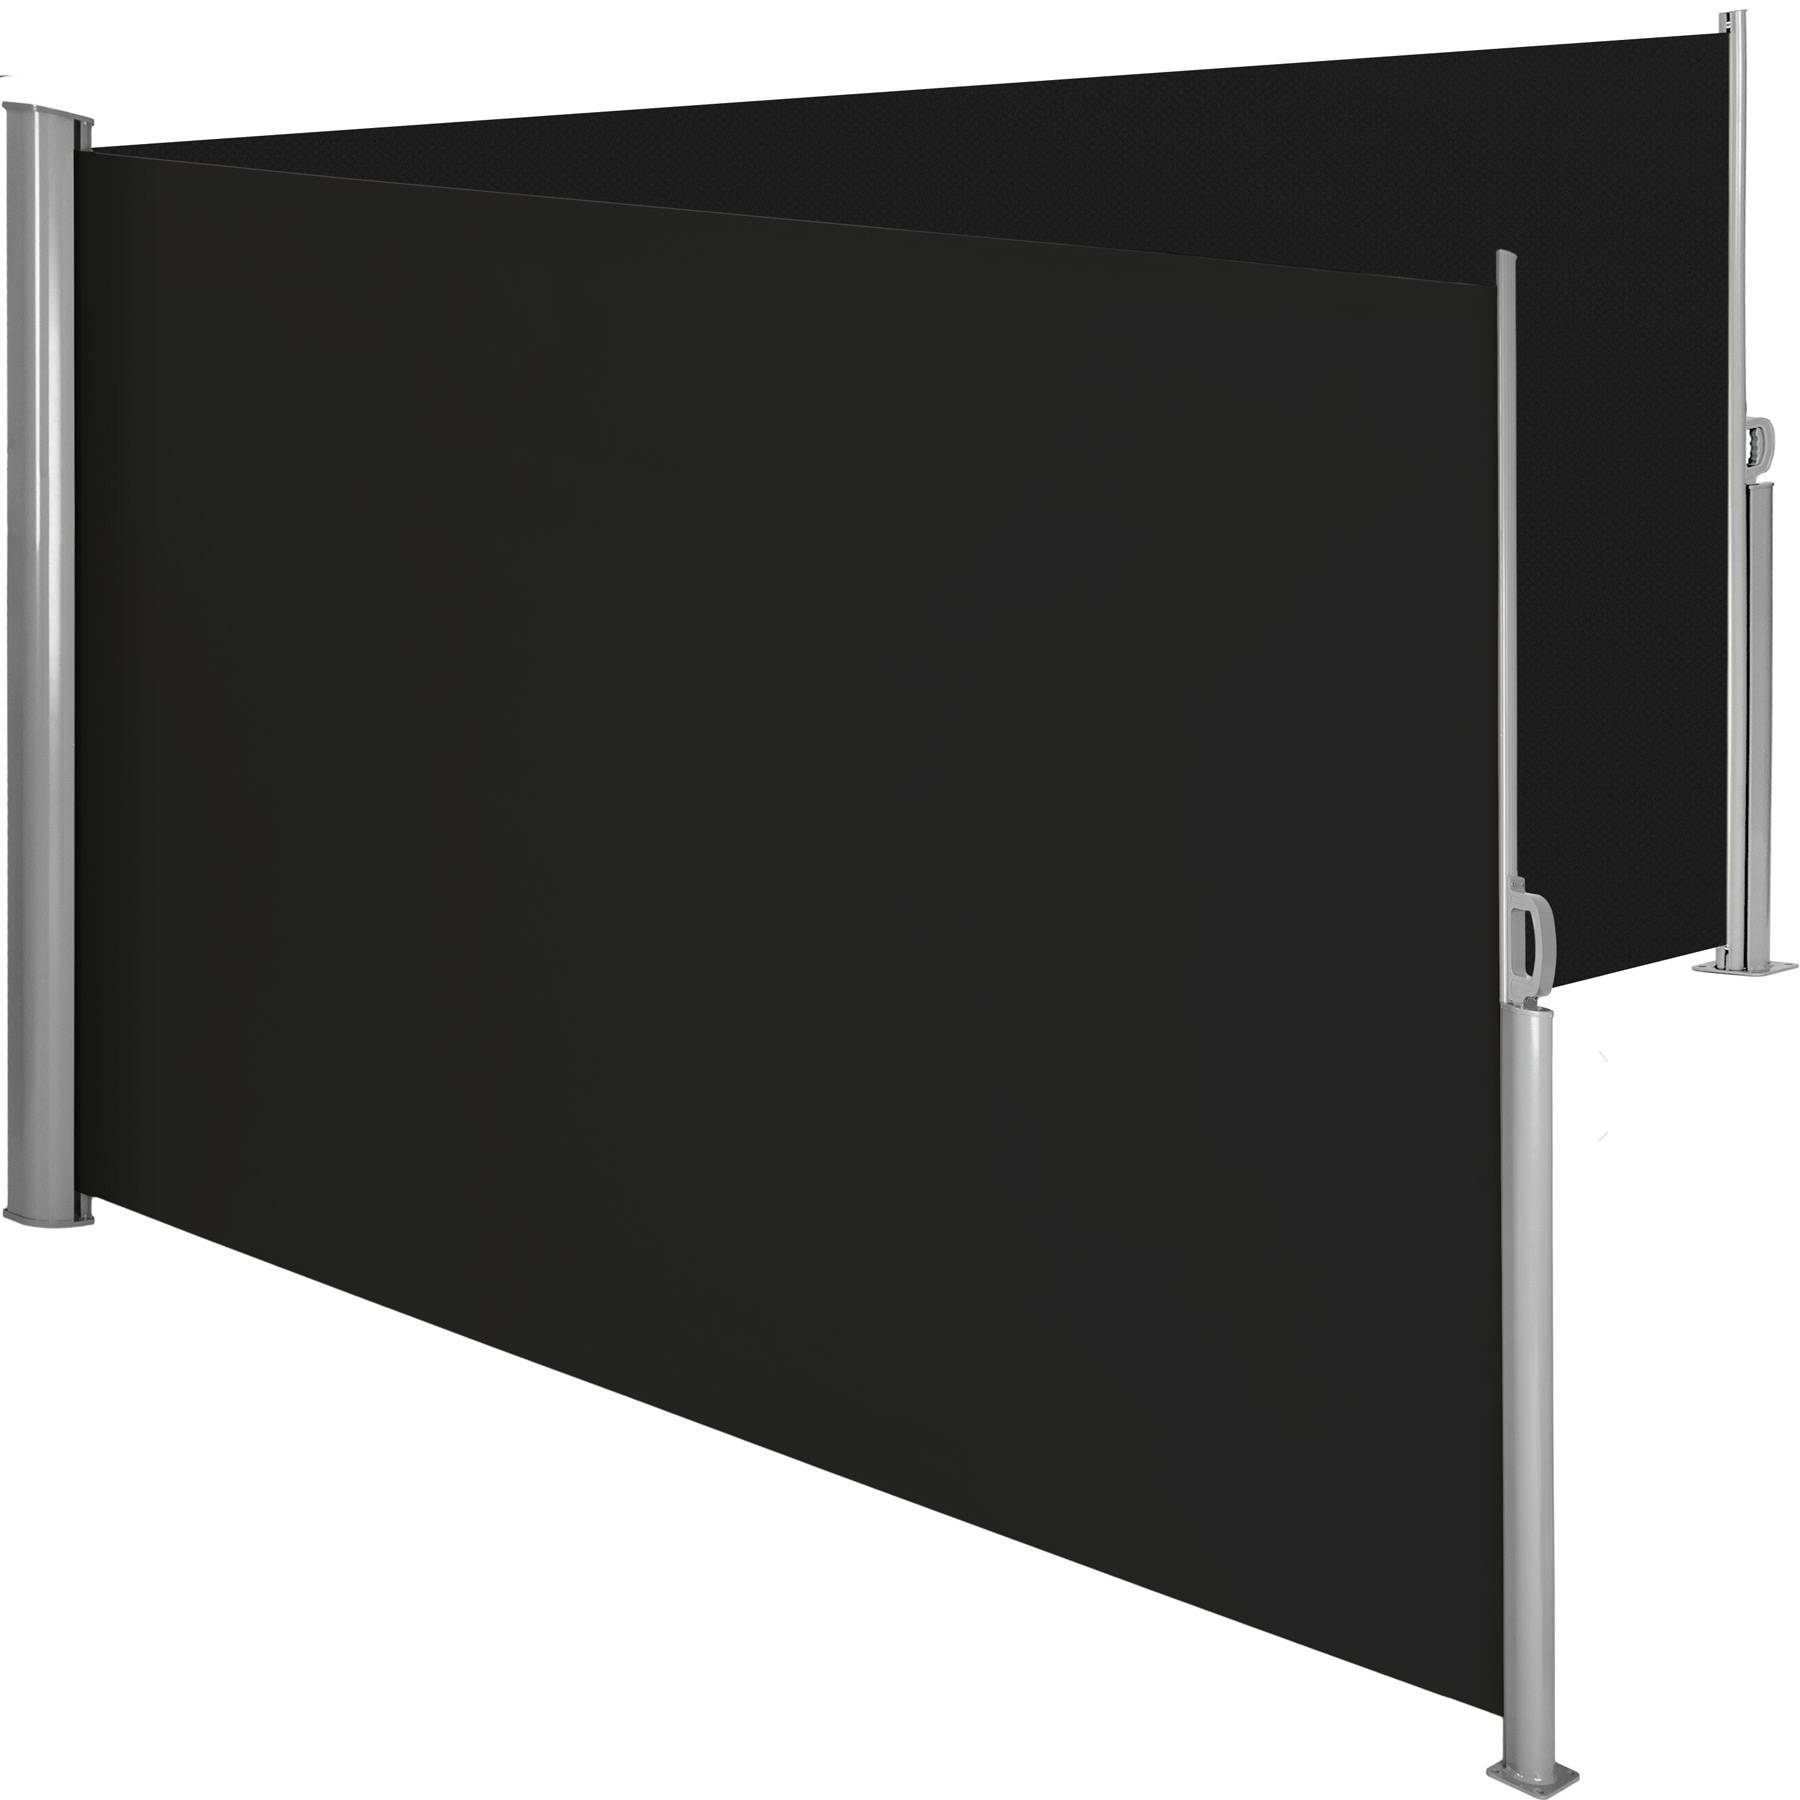 tectake Aluminium double side awning privacy screen - black, 200 x 600 cm